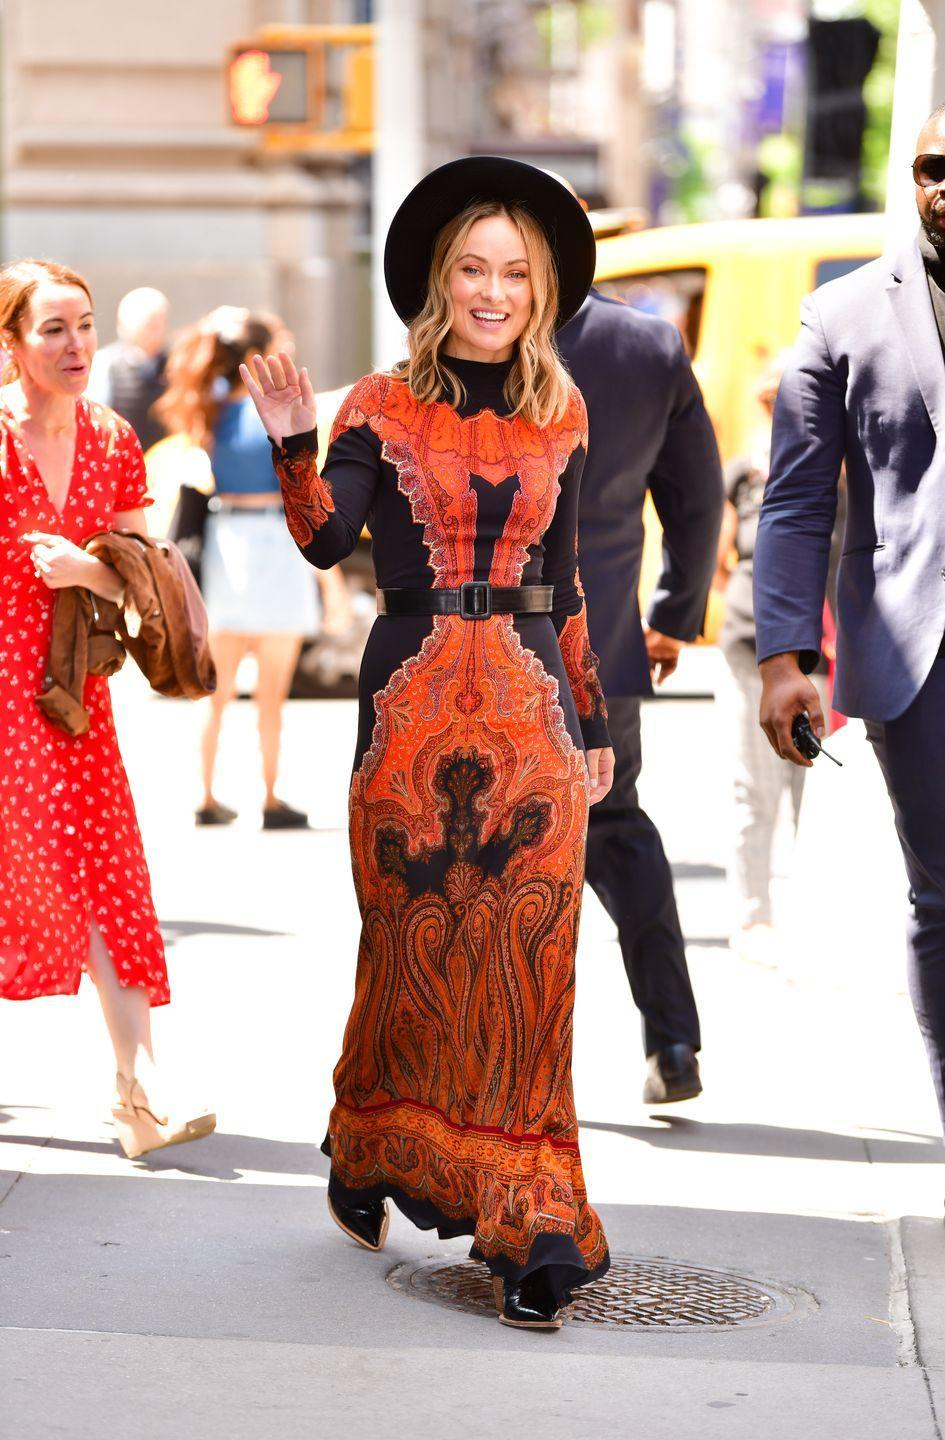 "<p>Wilde wore a 1970s-inspired <a href=""https://www.thezoereport.com/p/olivia-wildes-maxi-dress-is-the-one-step-outfit-your-spring-lineup-needs-17892770"" rel=""nofollow noopener"" target=""_blank"" data-ylk=""slk:paisley dress"" class=""link rapid-noclick-resp"">paisley dress</a> with a fedora and boots for the NYC event. </p>"